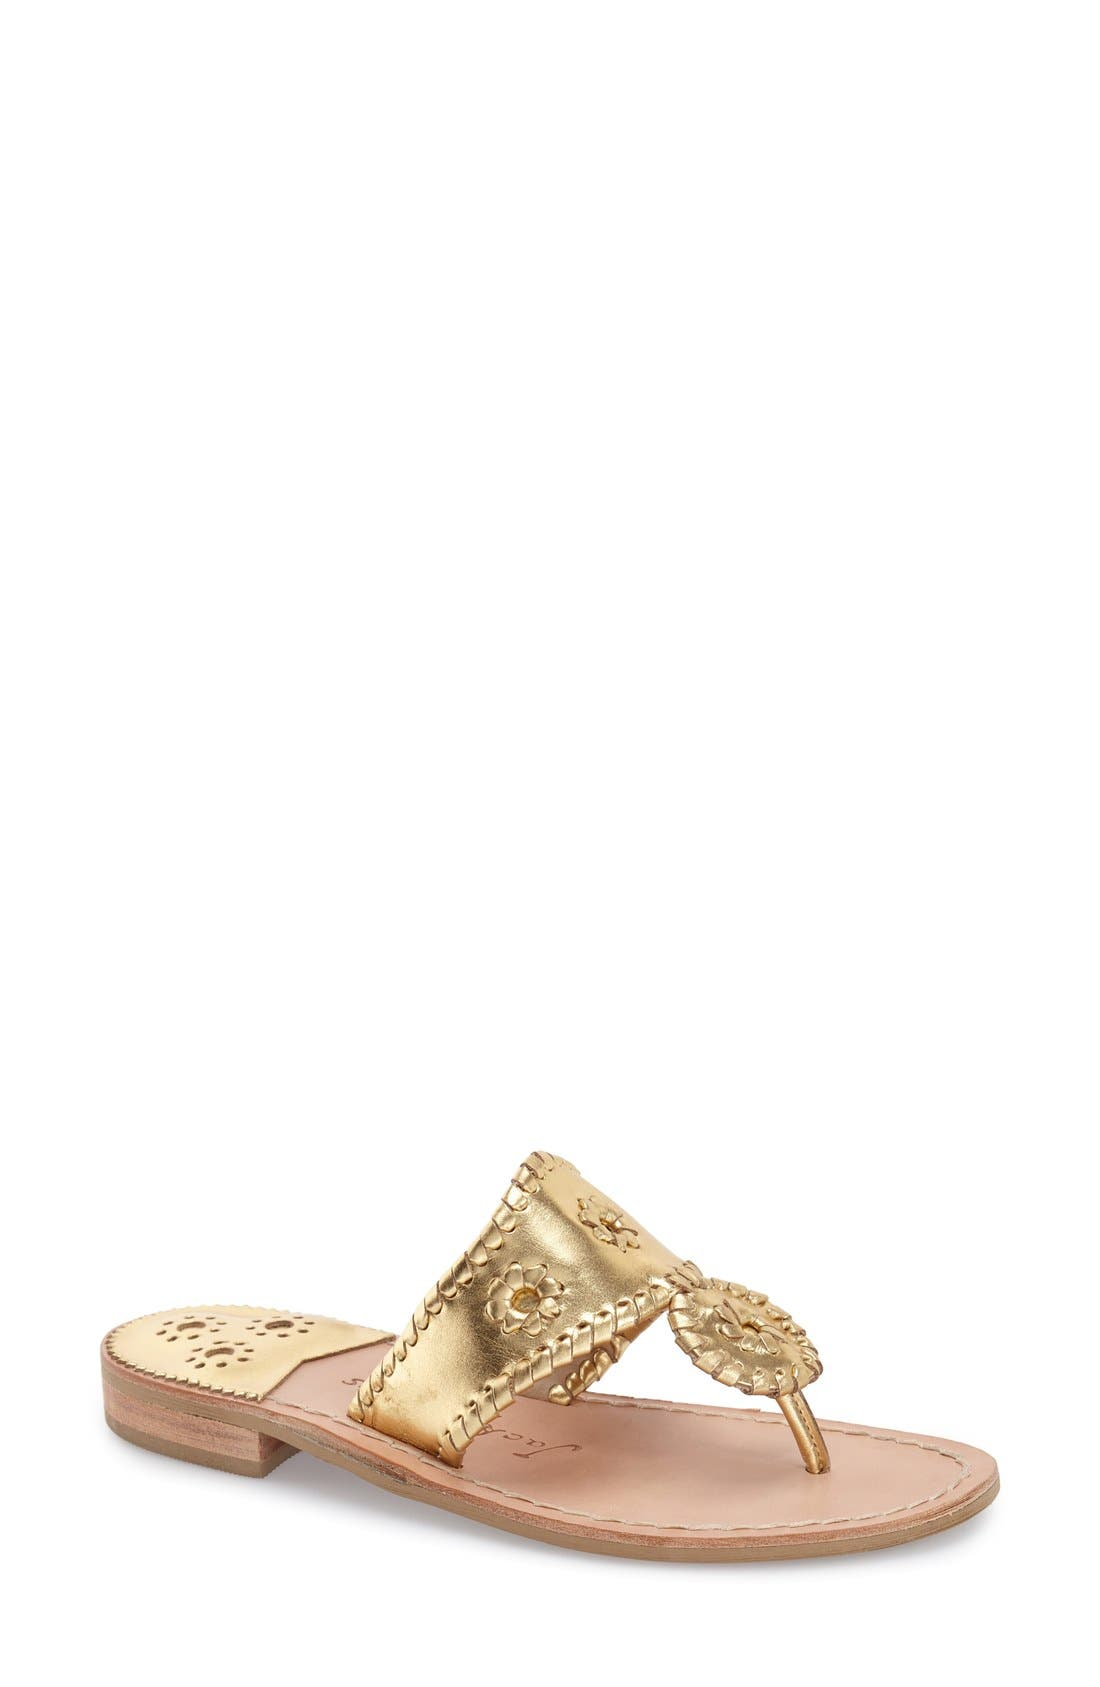 Palm Beach Whipstitch Thong Sandal in Gold